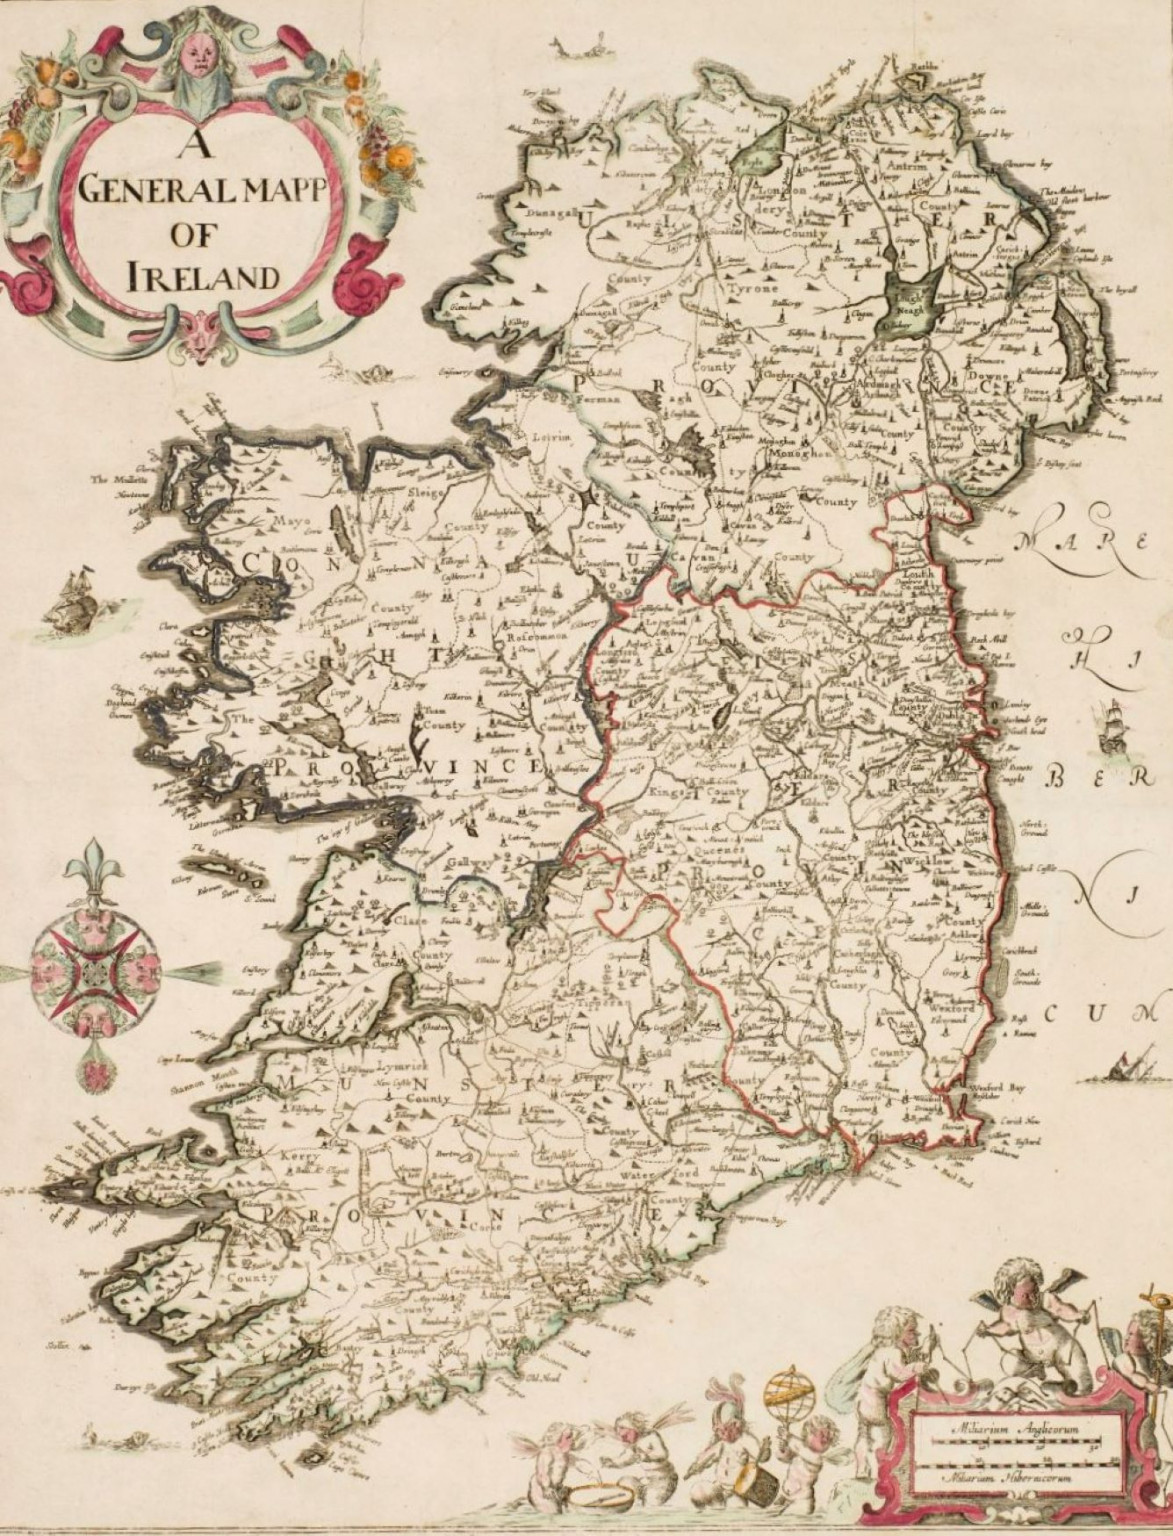 Map of Ireland from Sir William Petty's 'Hiberniae Delineatio', published in 1684, the first printed atlas of Ireland